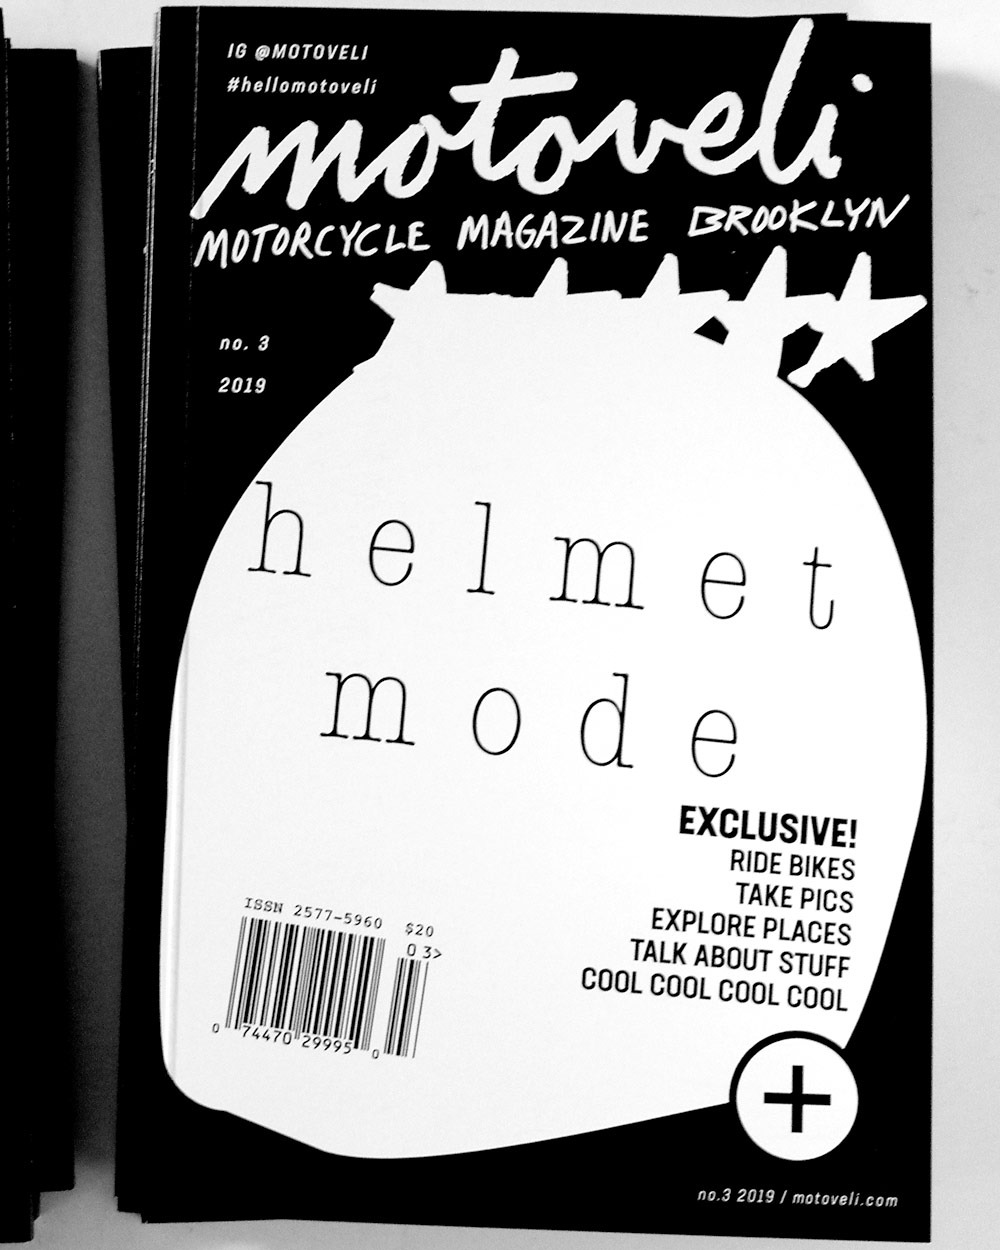 A black-and-white magazine cover featuring a white silhouette of a motorcycle helmet.